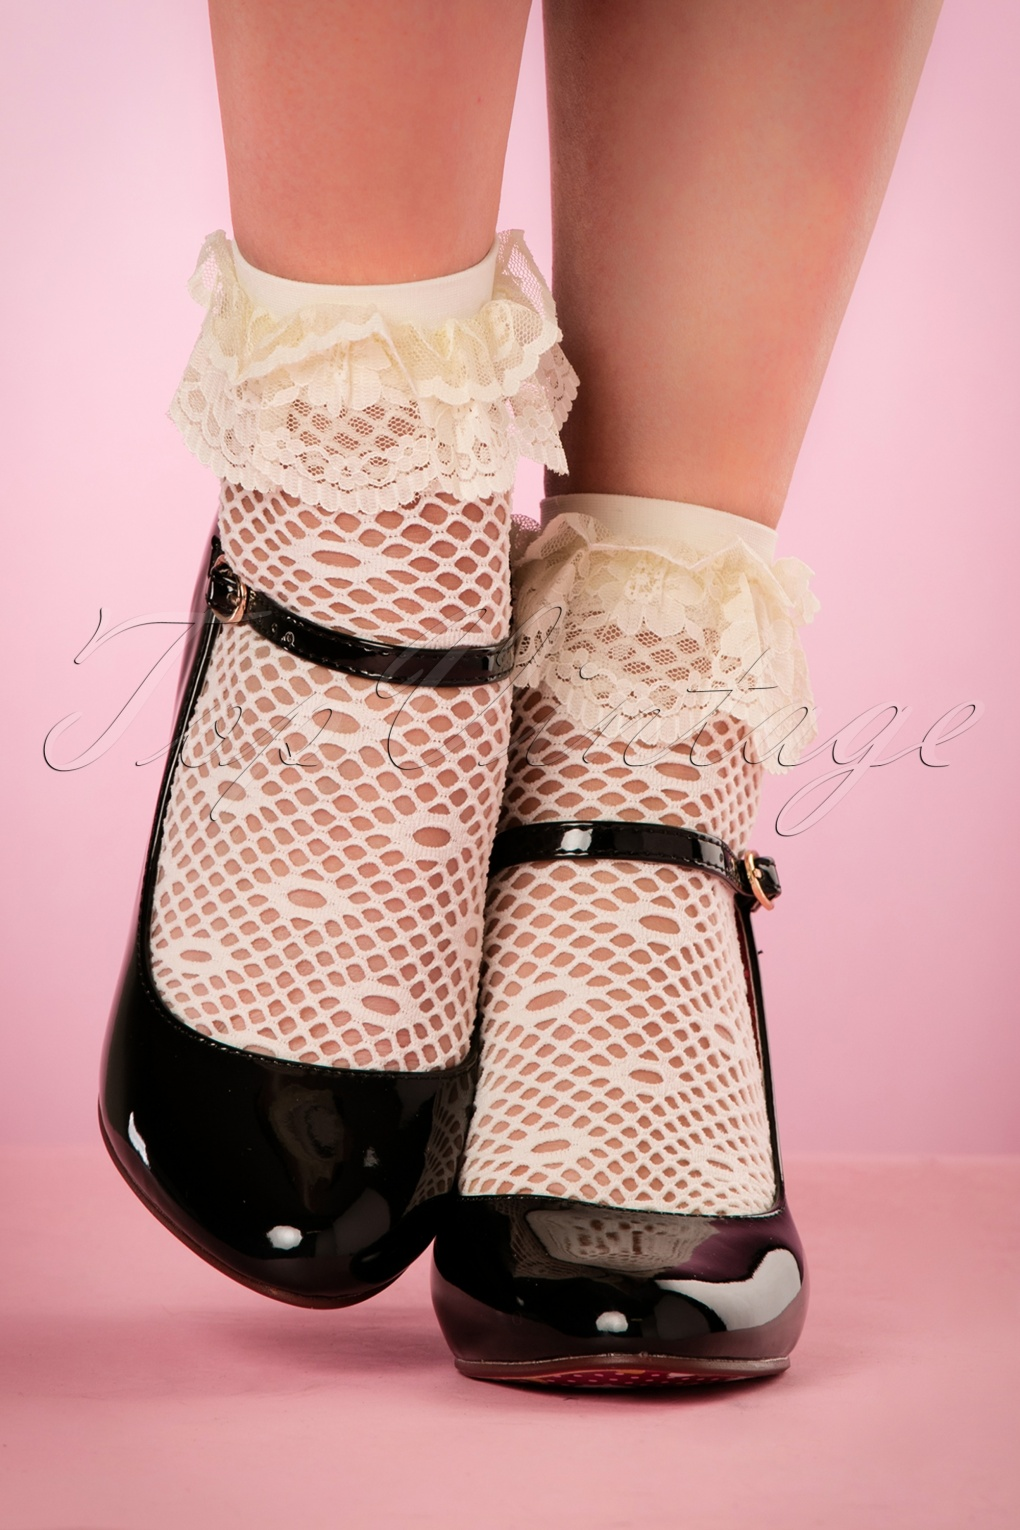 Chat Uk Teen Heels Frilly Socks For Women